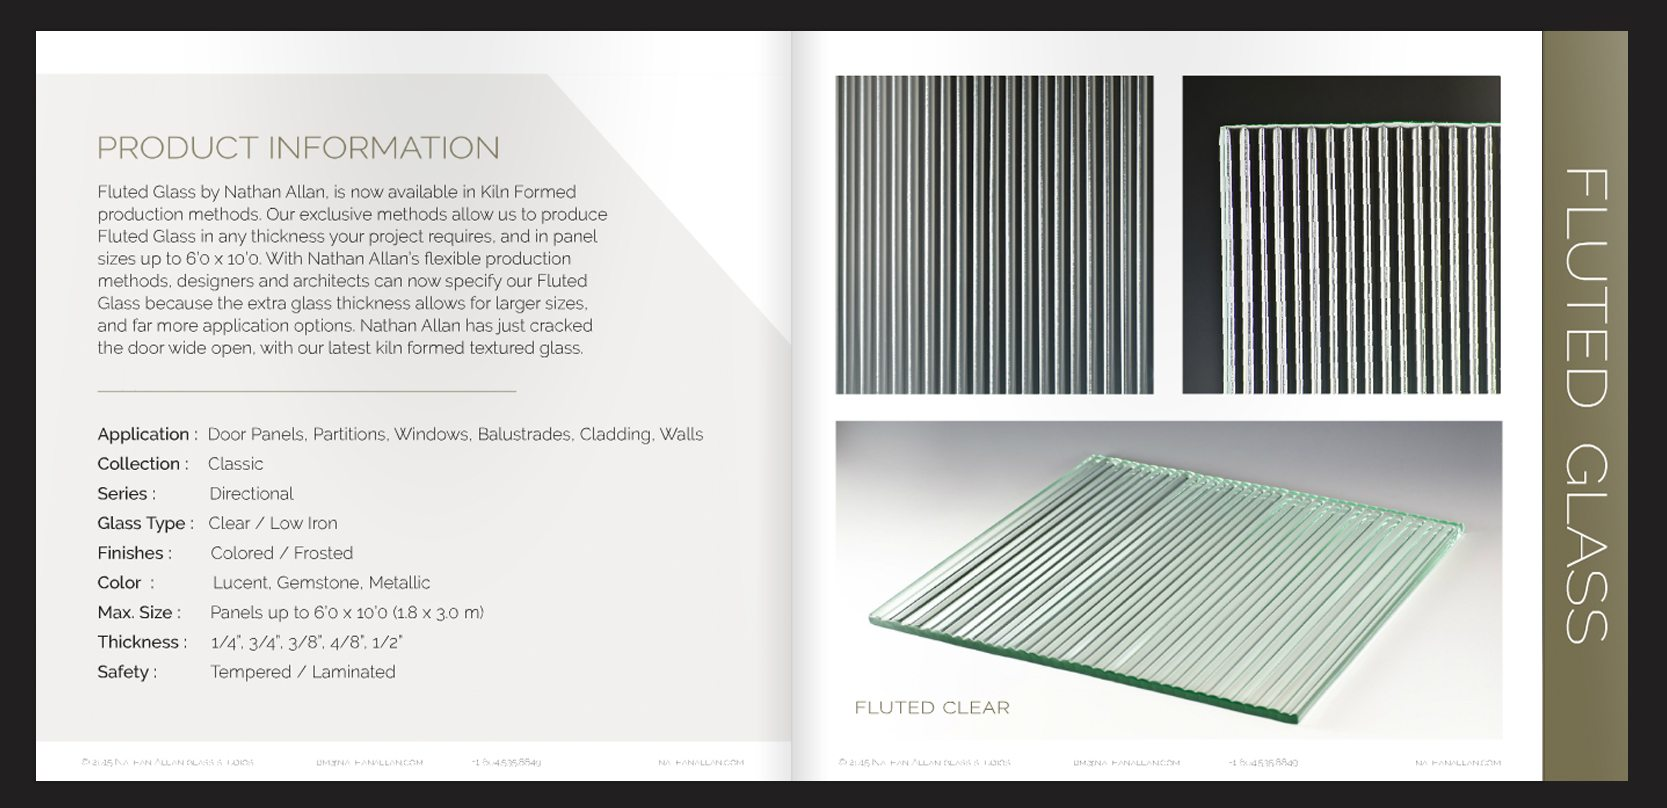 Introducing Fluted Glass